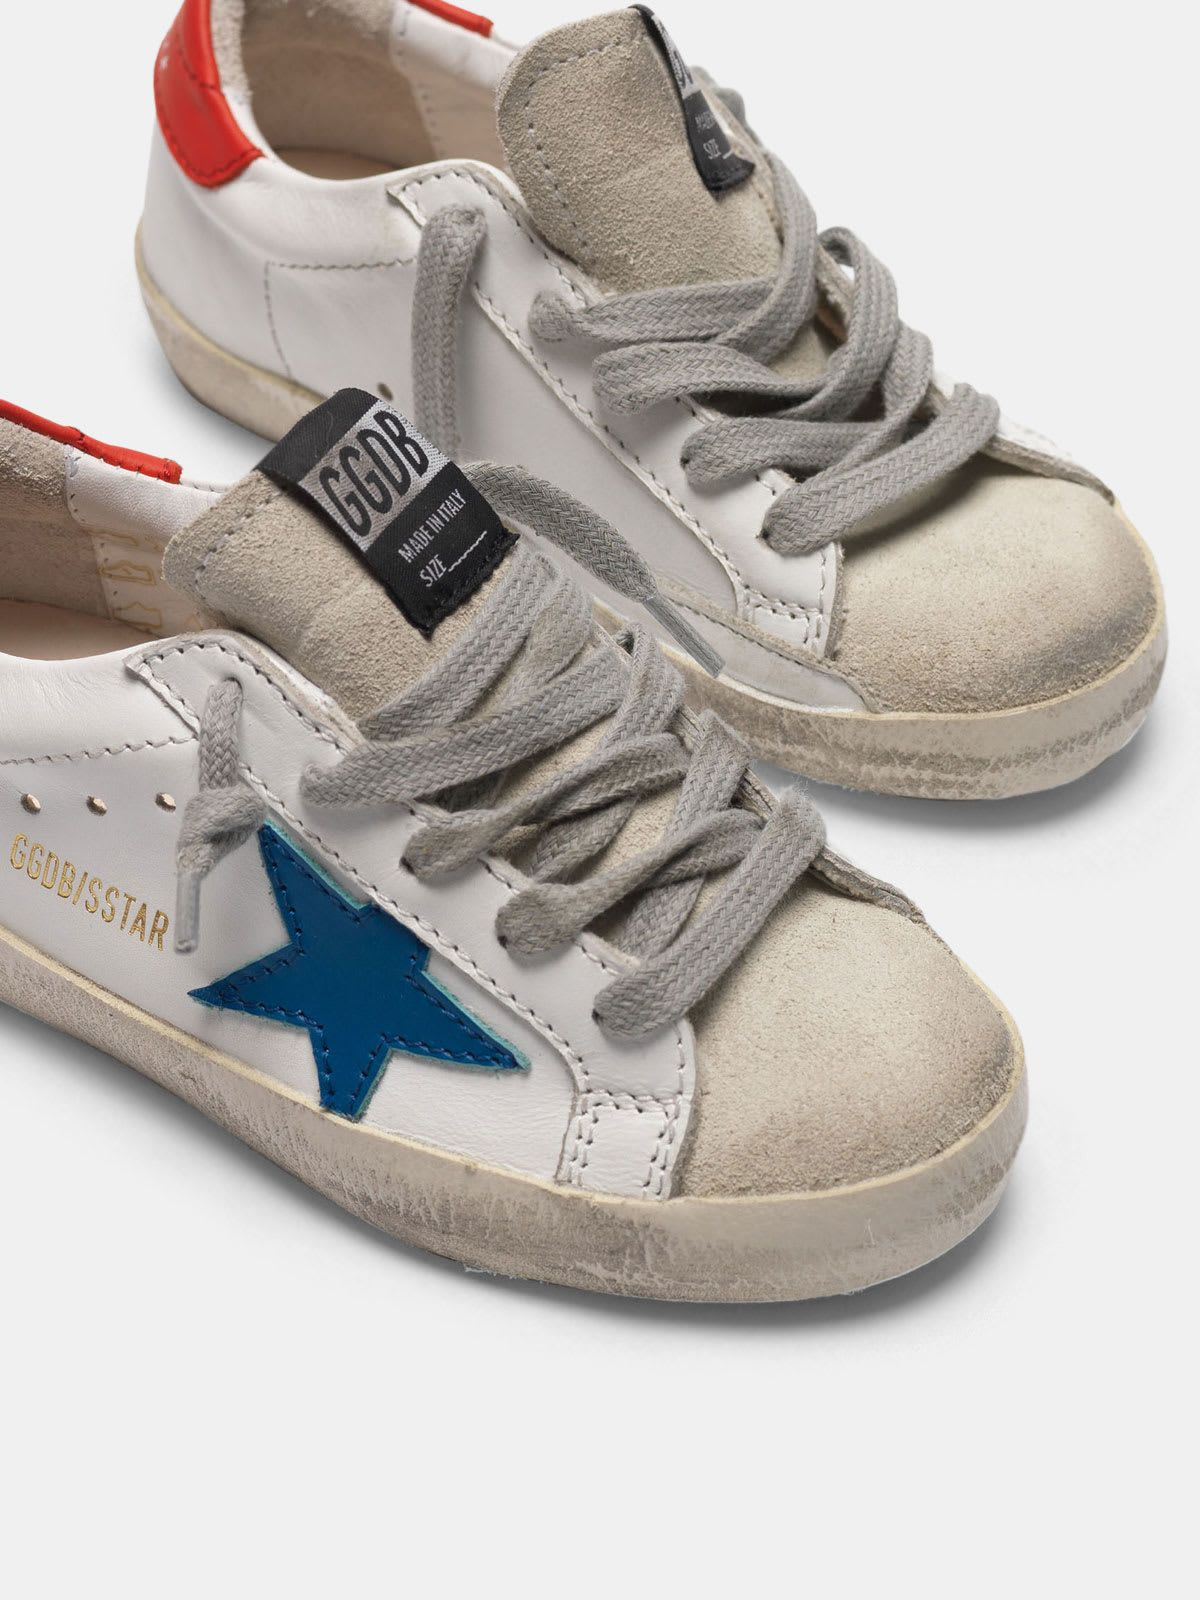 Super-Star sneakers with blue star and red heel tab